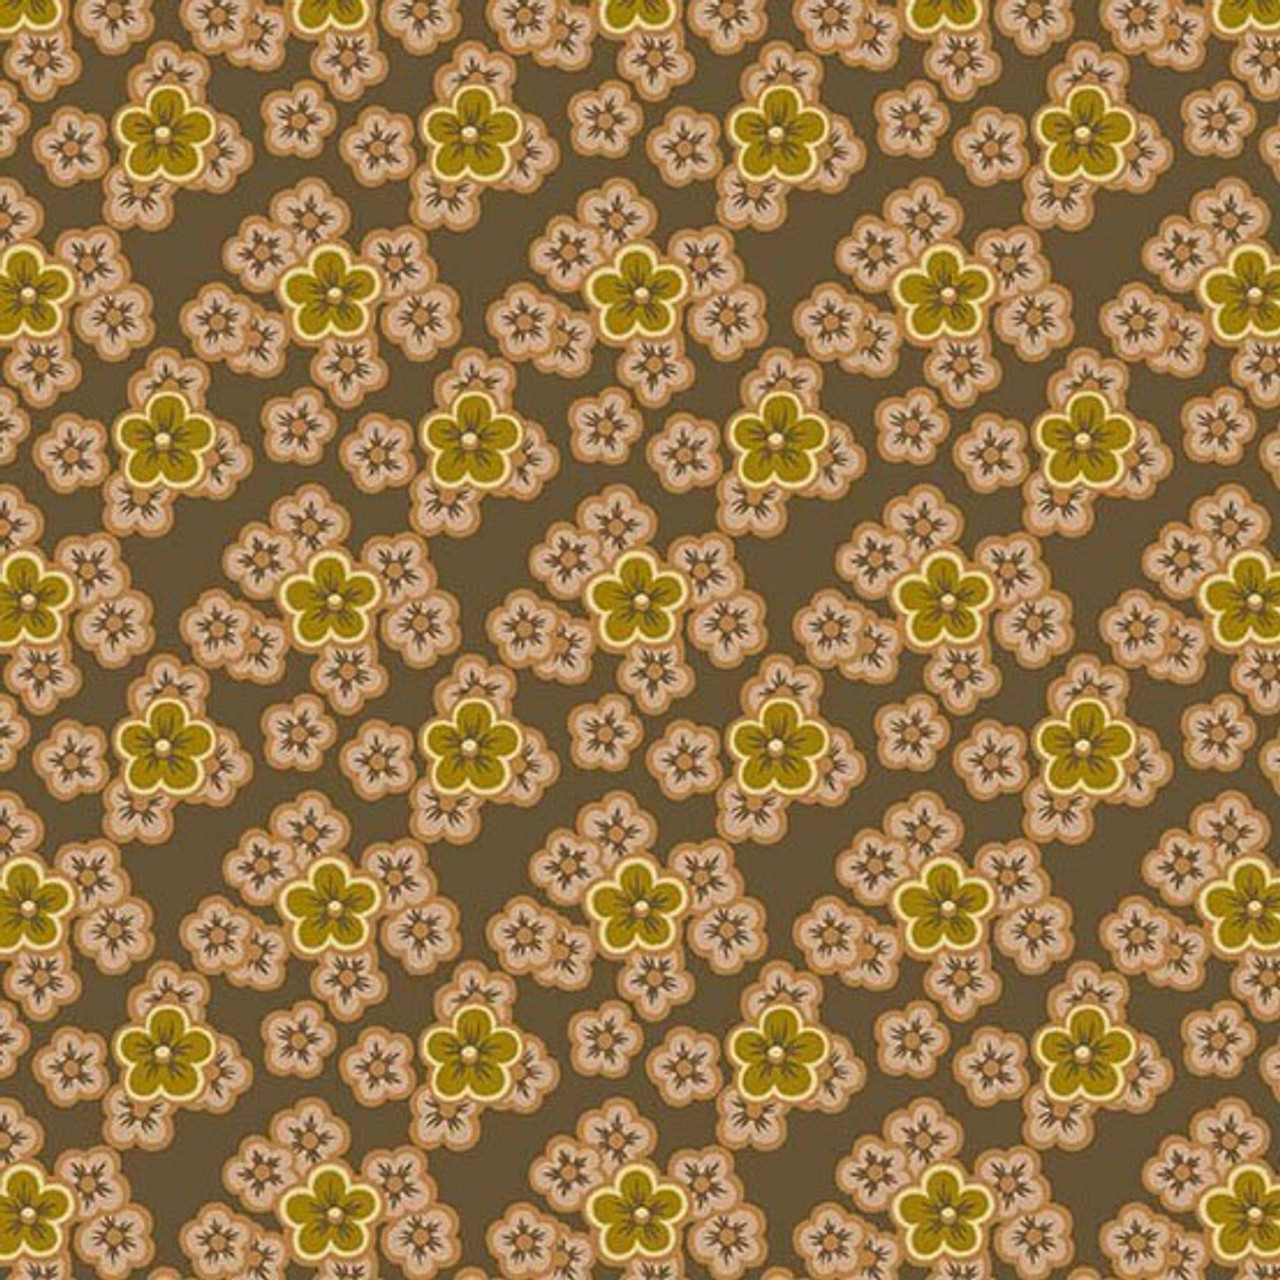 Maling Road: Flower Patches - Brown